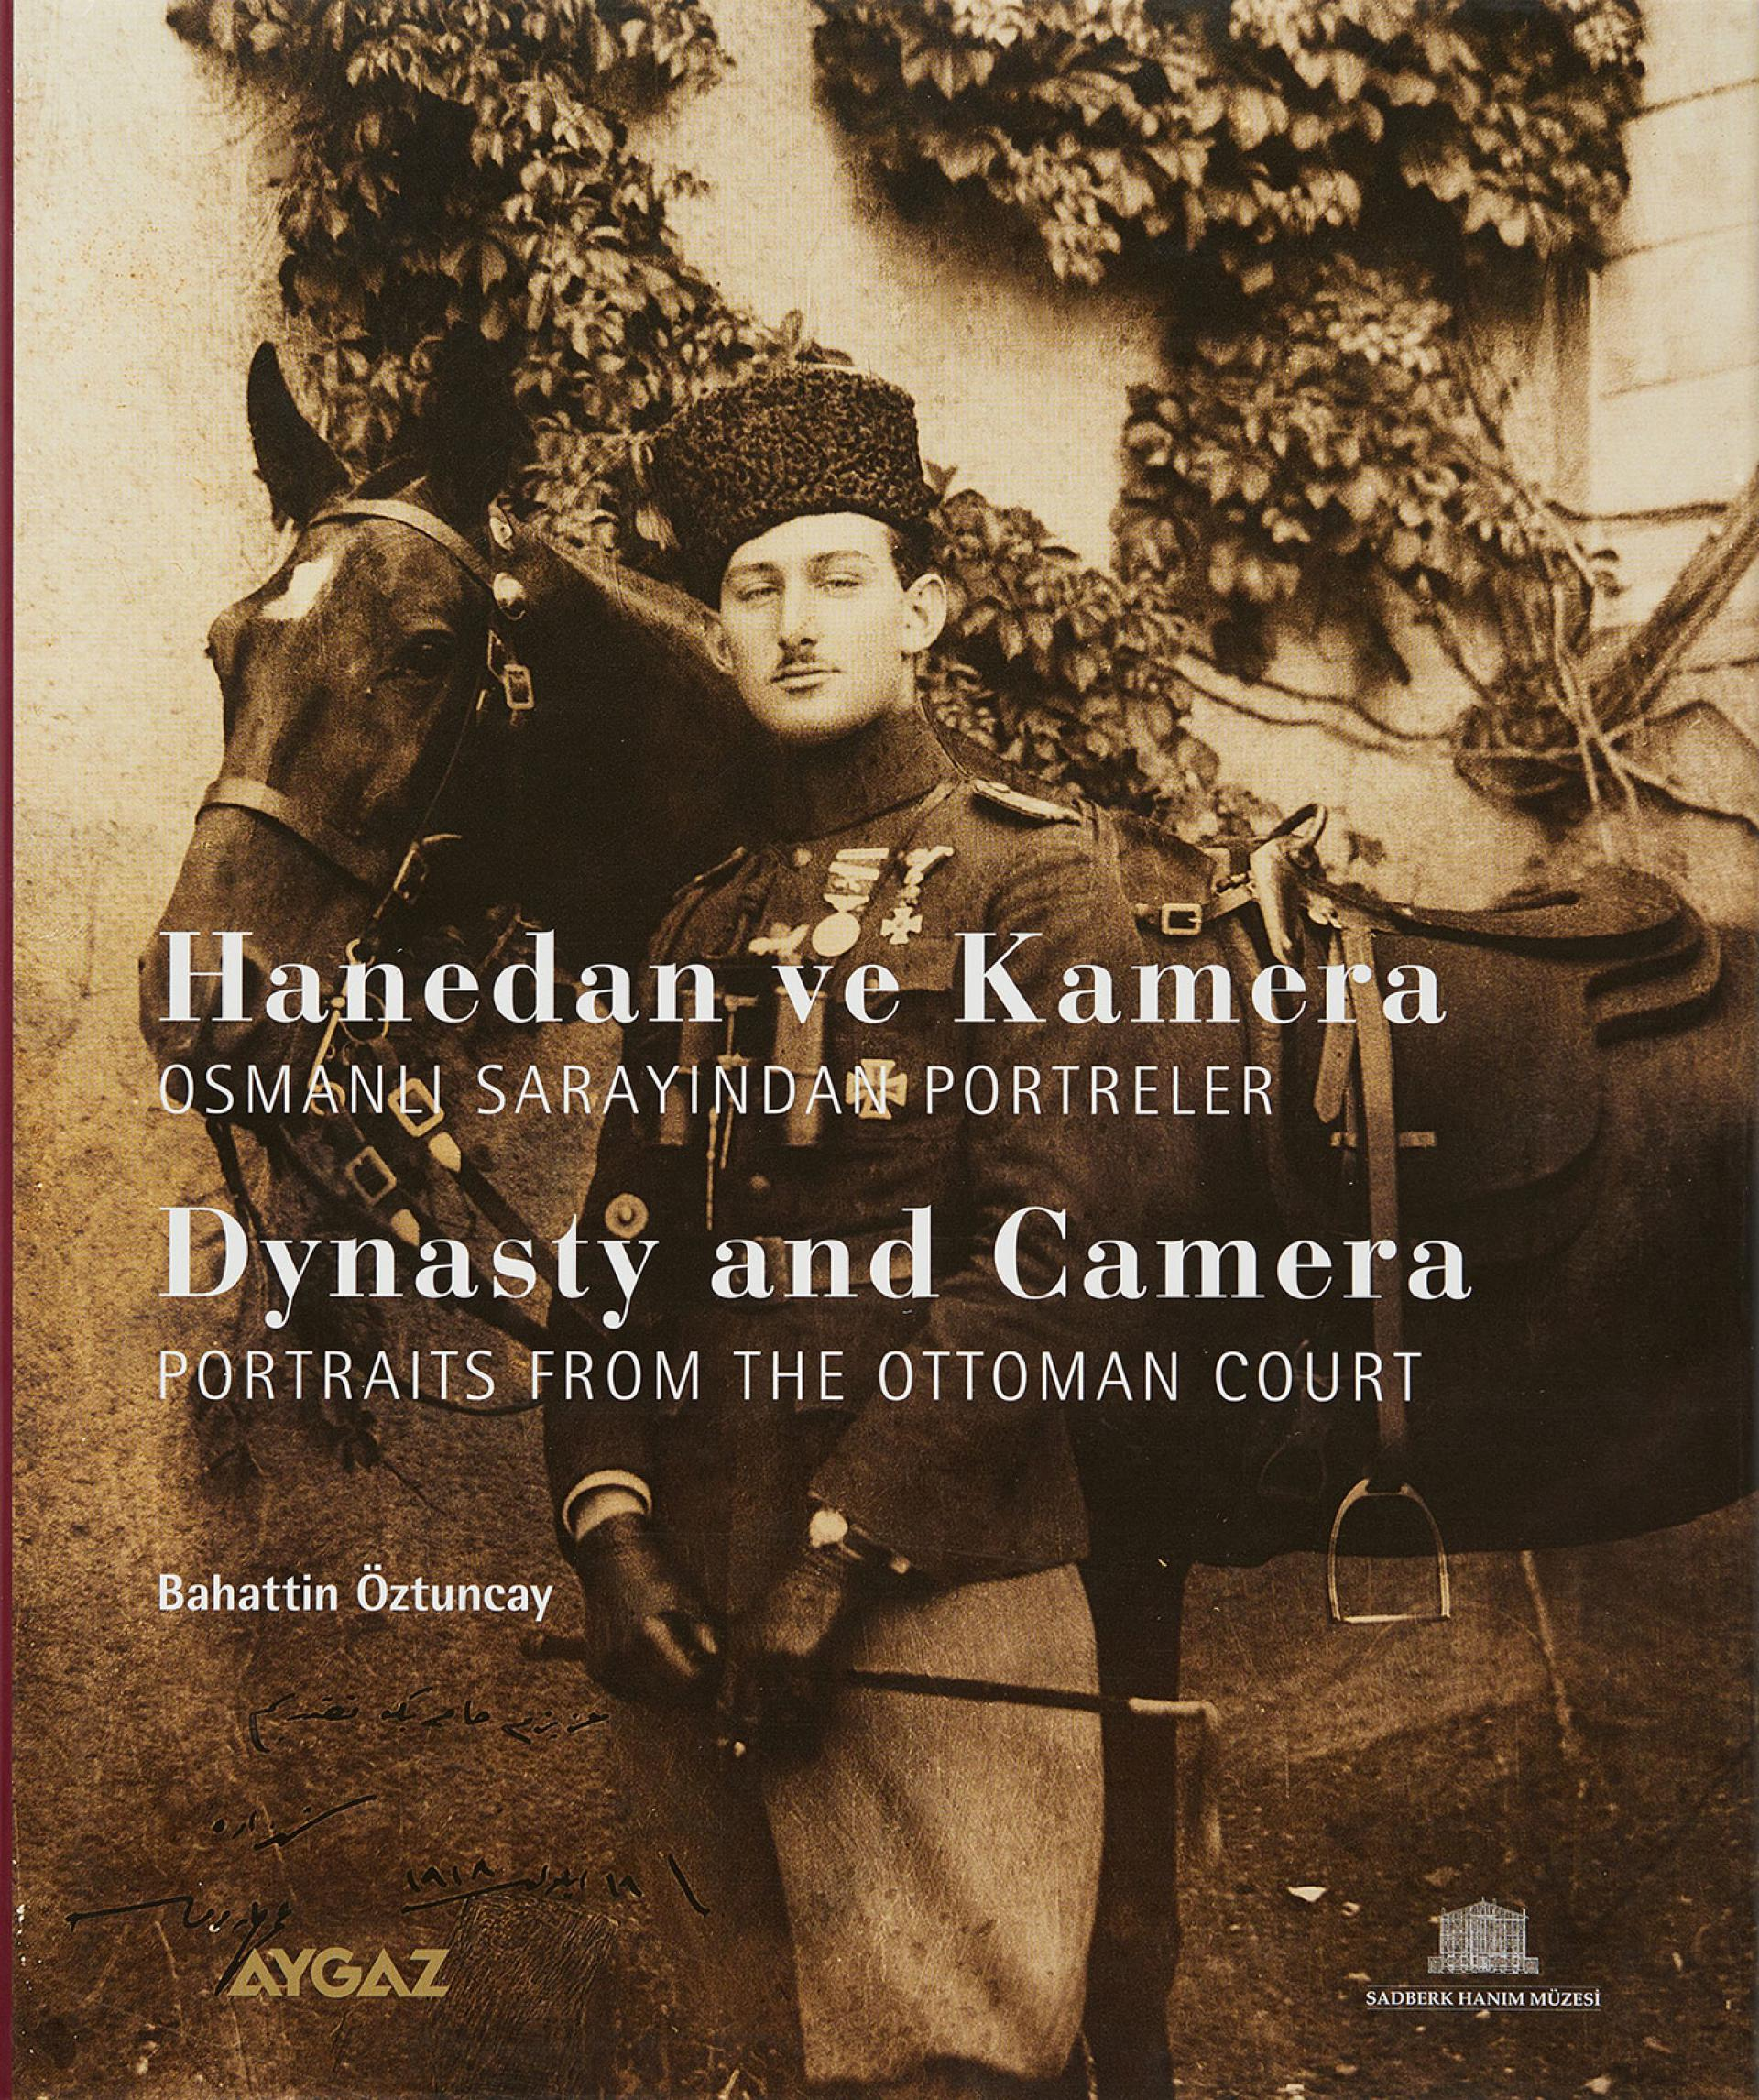 Dynasty and Camera - Portraits From The Ottoman Court  - BOOKS - Sadberk Hanım Museum